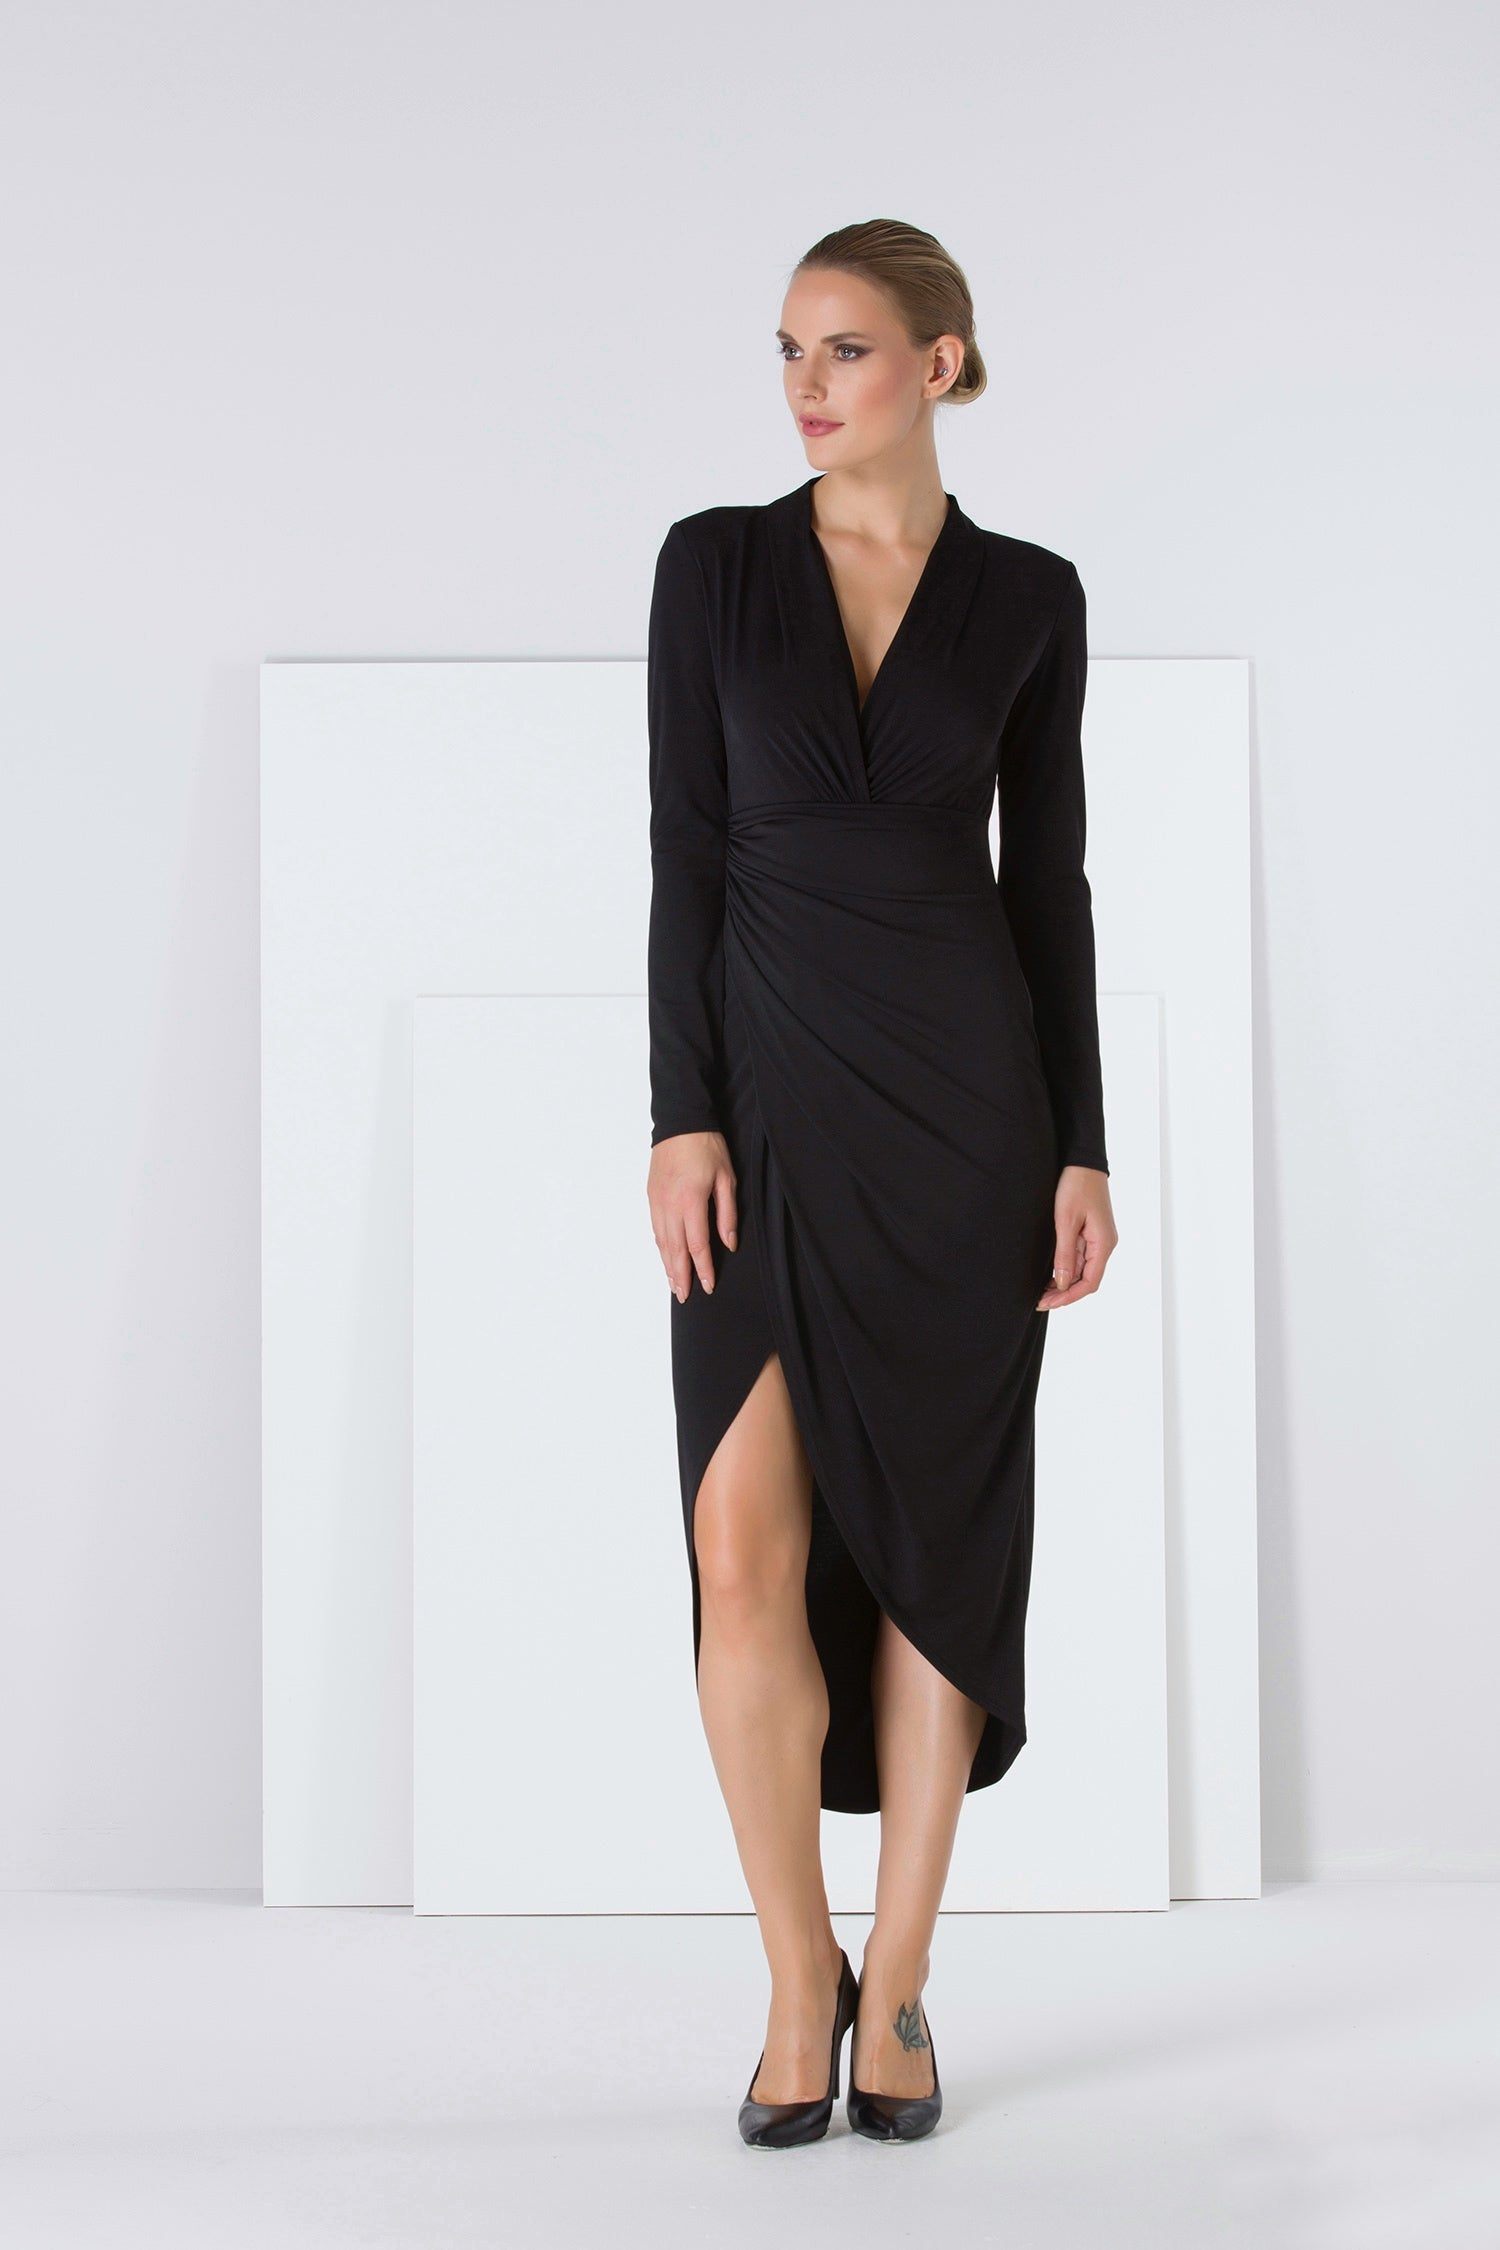 Wrap V neck Long sleeves black dress - 54016